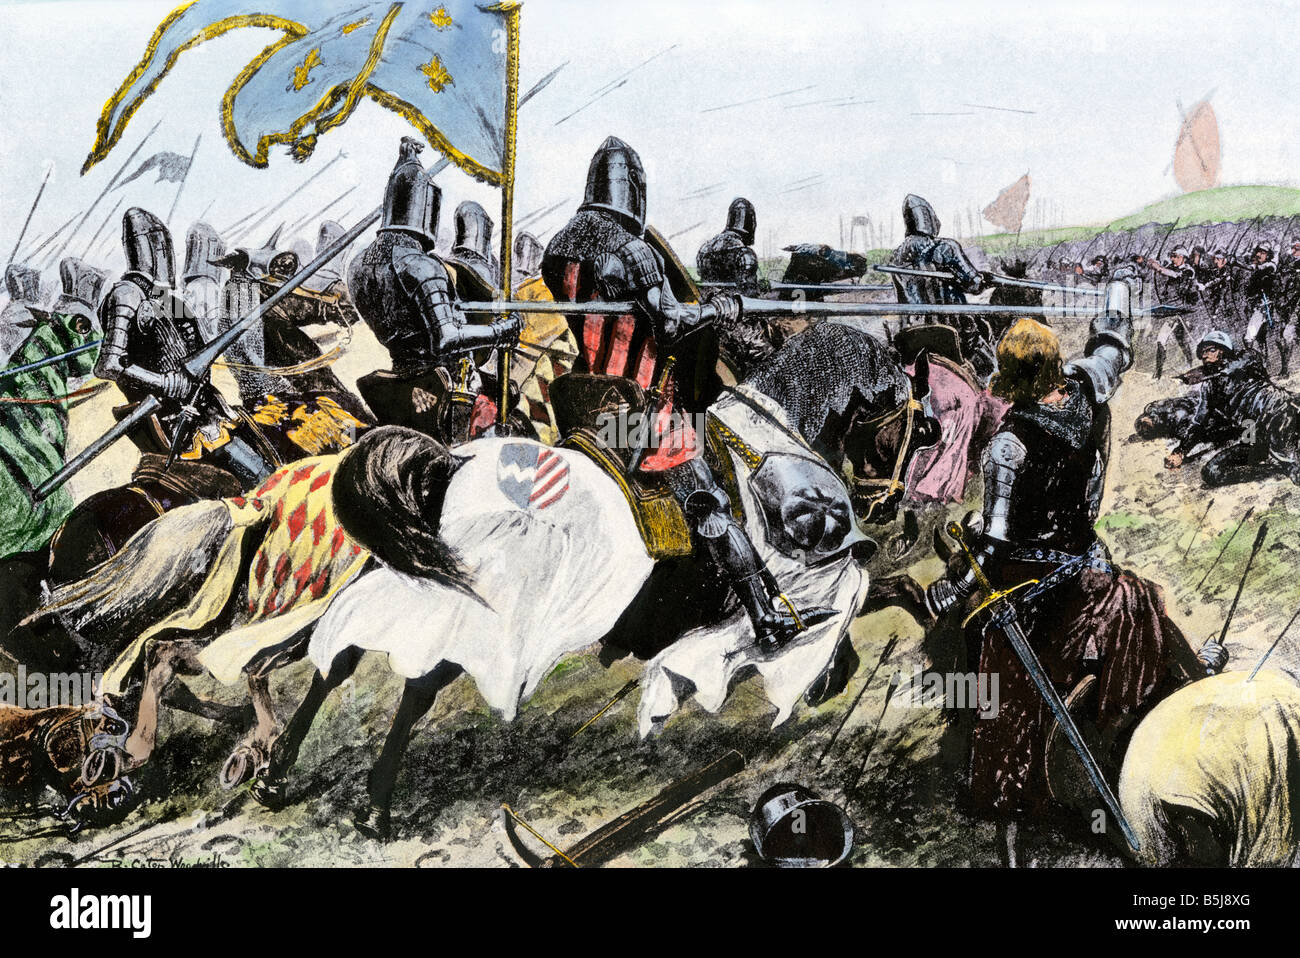 Charge of the French knights against English longbowmen at Crecy during the Hundred Years War 1346. Hand-colored - Stock Image